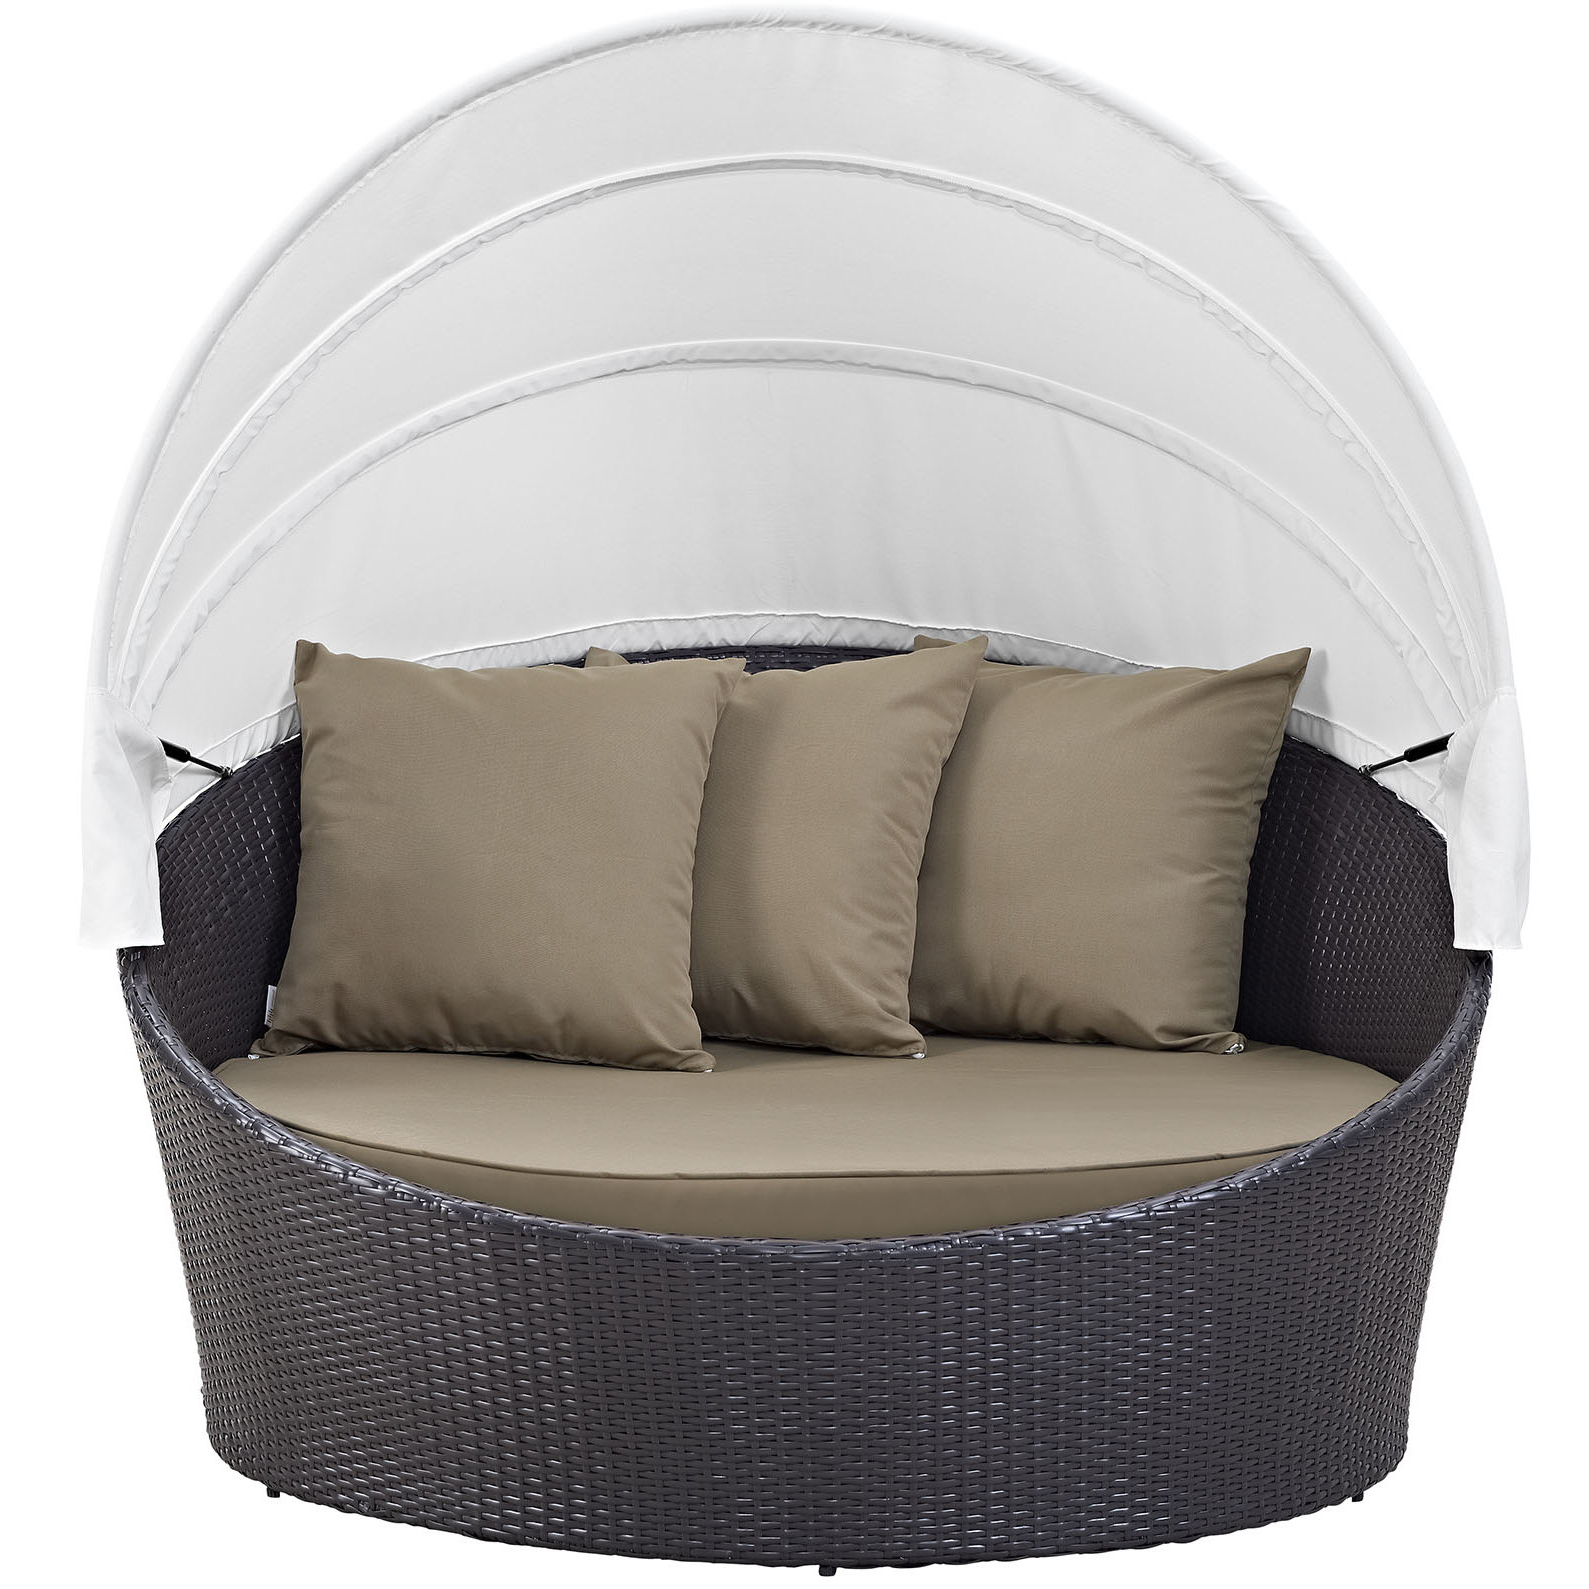 Olu Bamboo Large Round Patio Daybeds With Cushions Pertaining To Trendy Brentwood Canopy Patio Daybed With Cushions (View 6 of 20)